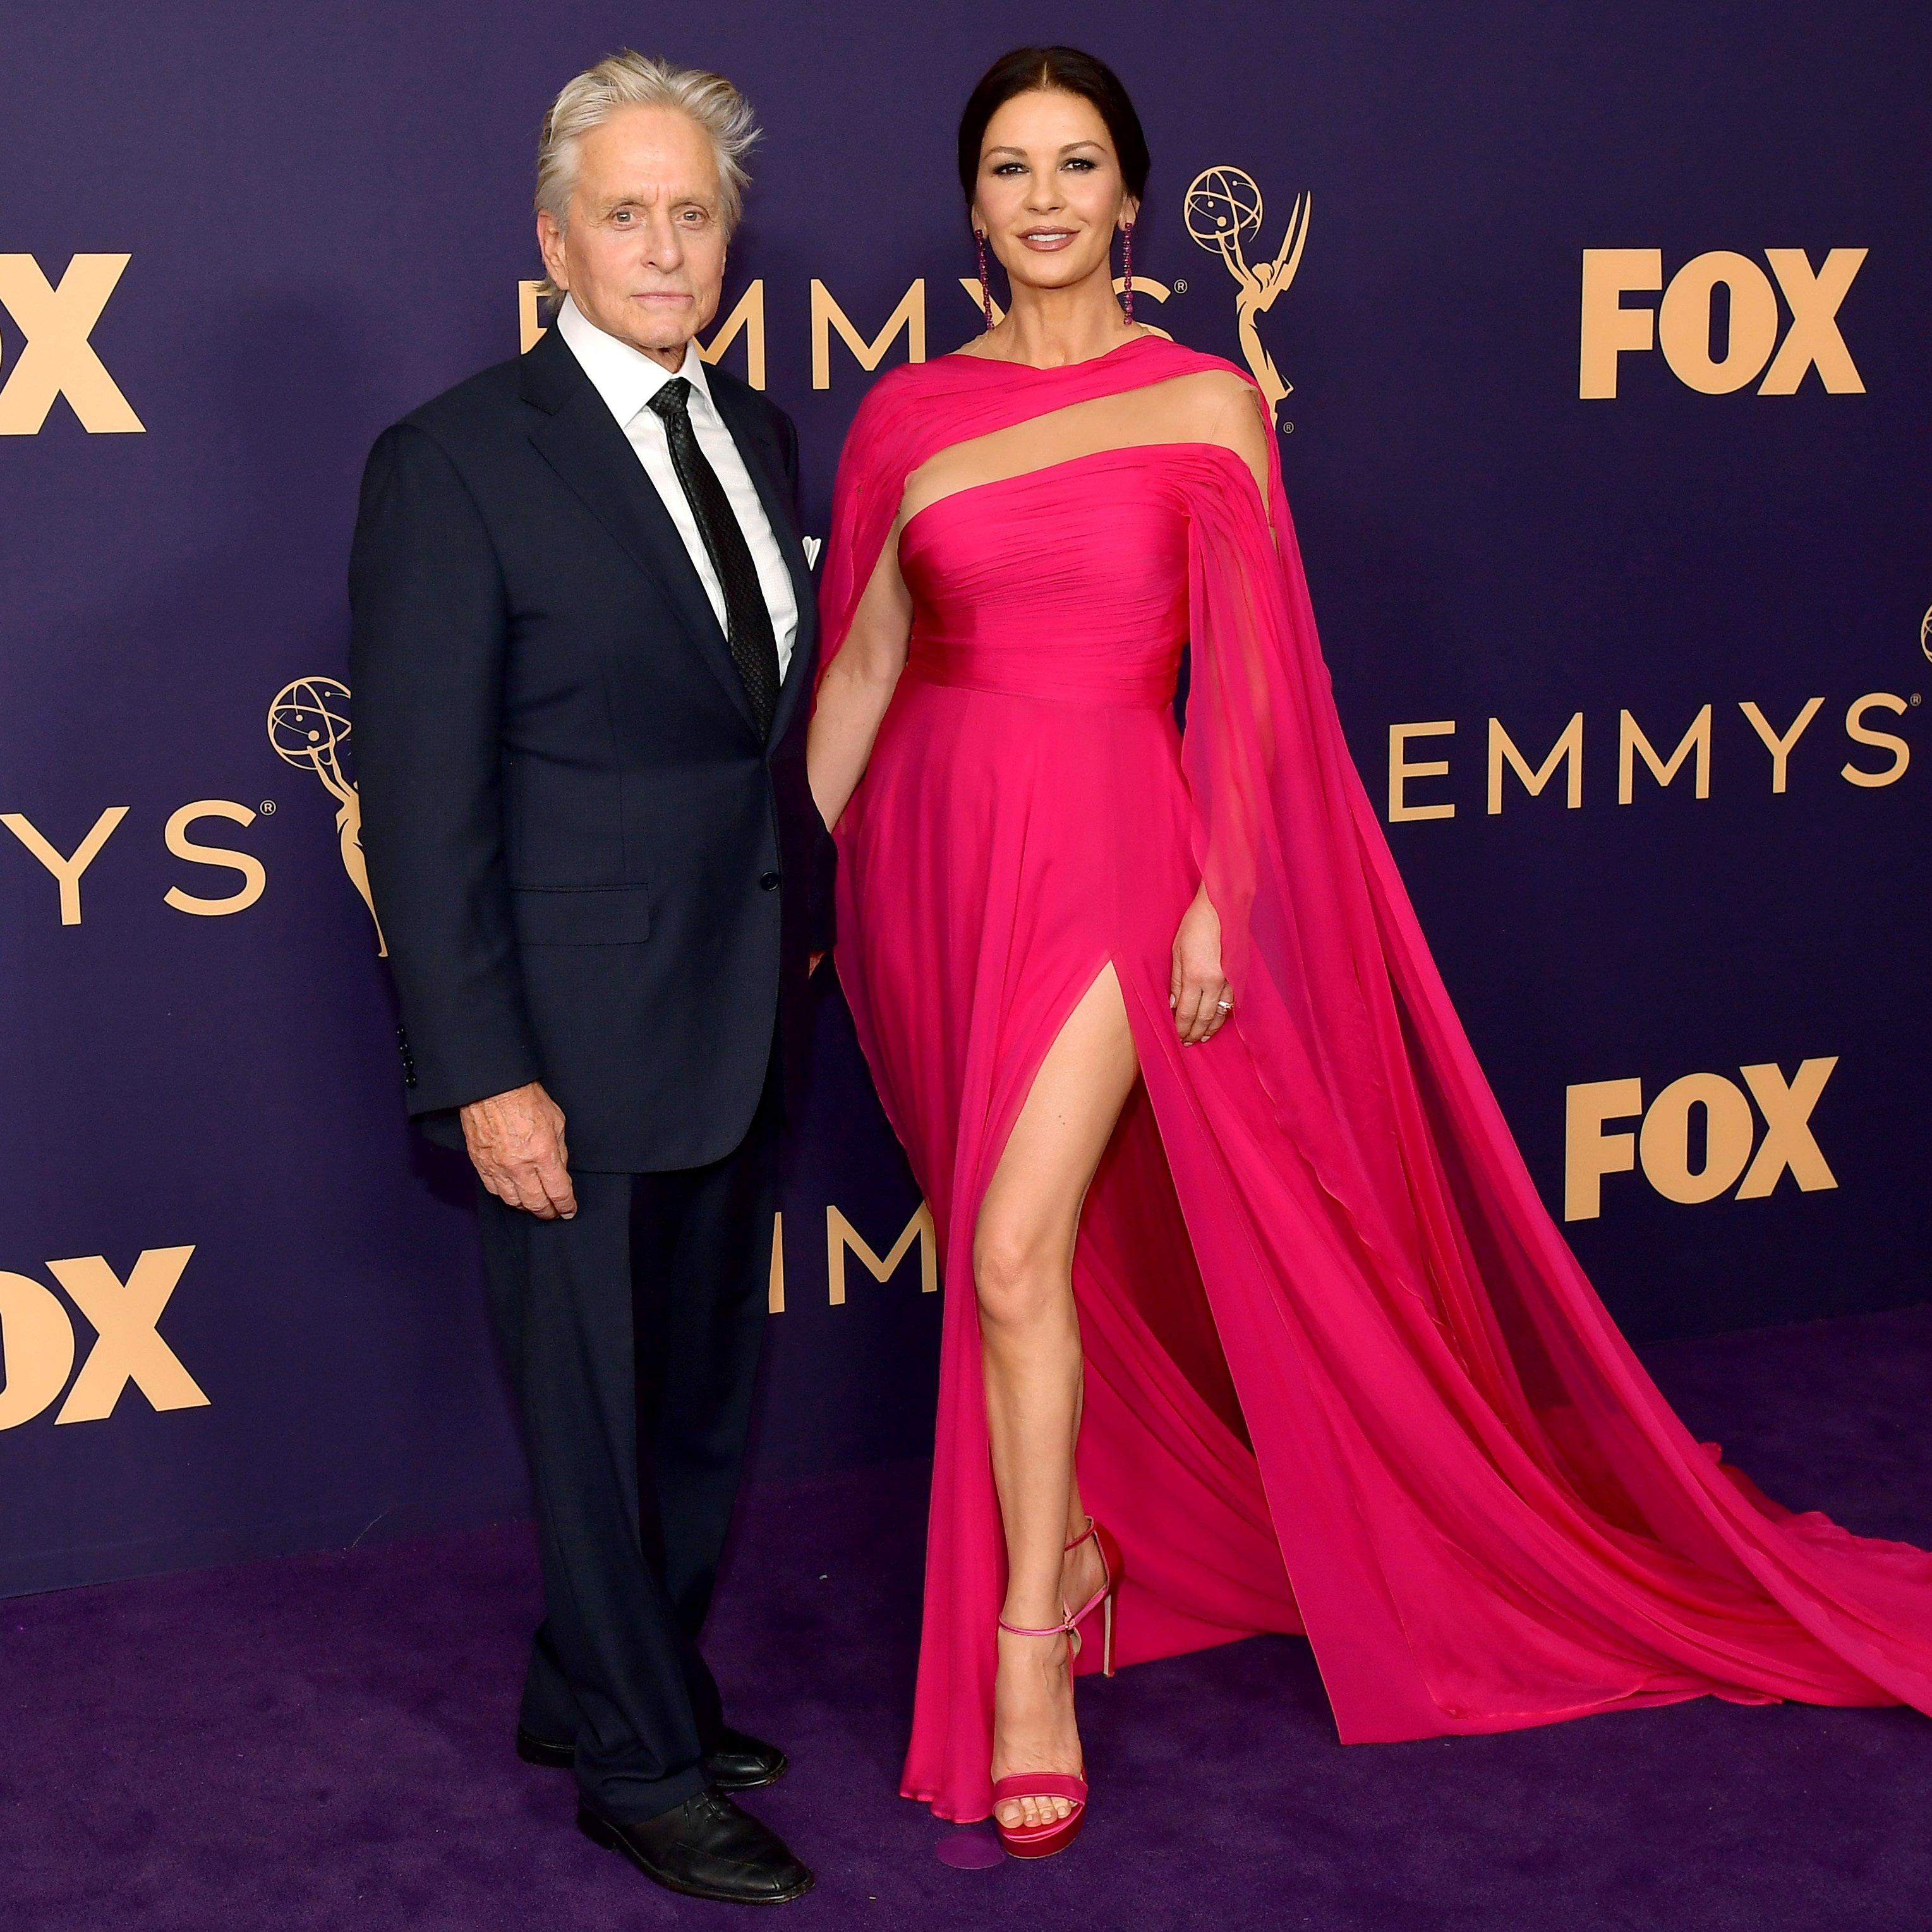 Michael Douglas  and Catherine Zeta-Jones attend the 71st Emmy Awards on September 22, 2019 in Los Angeles, California | Photo: Getty Images